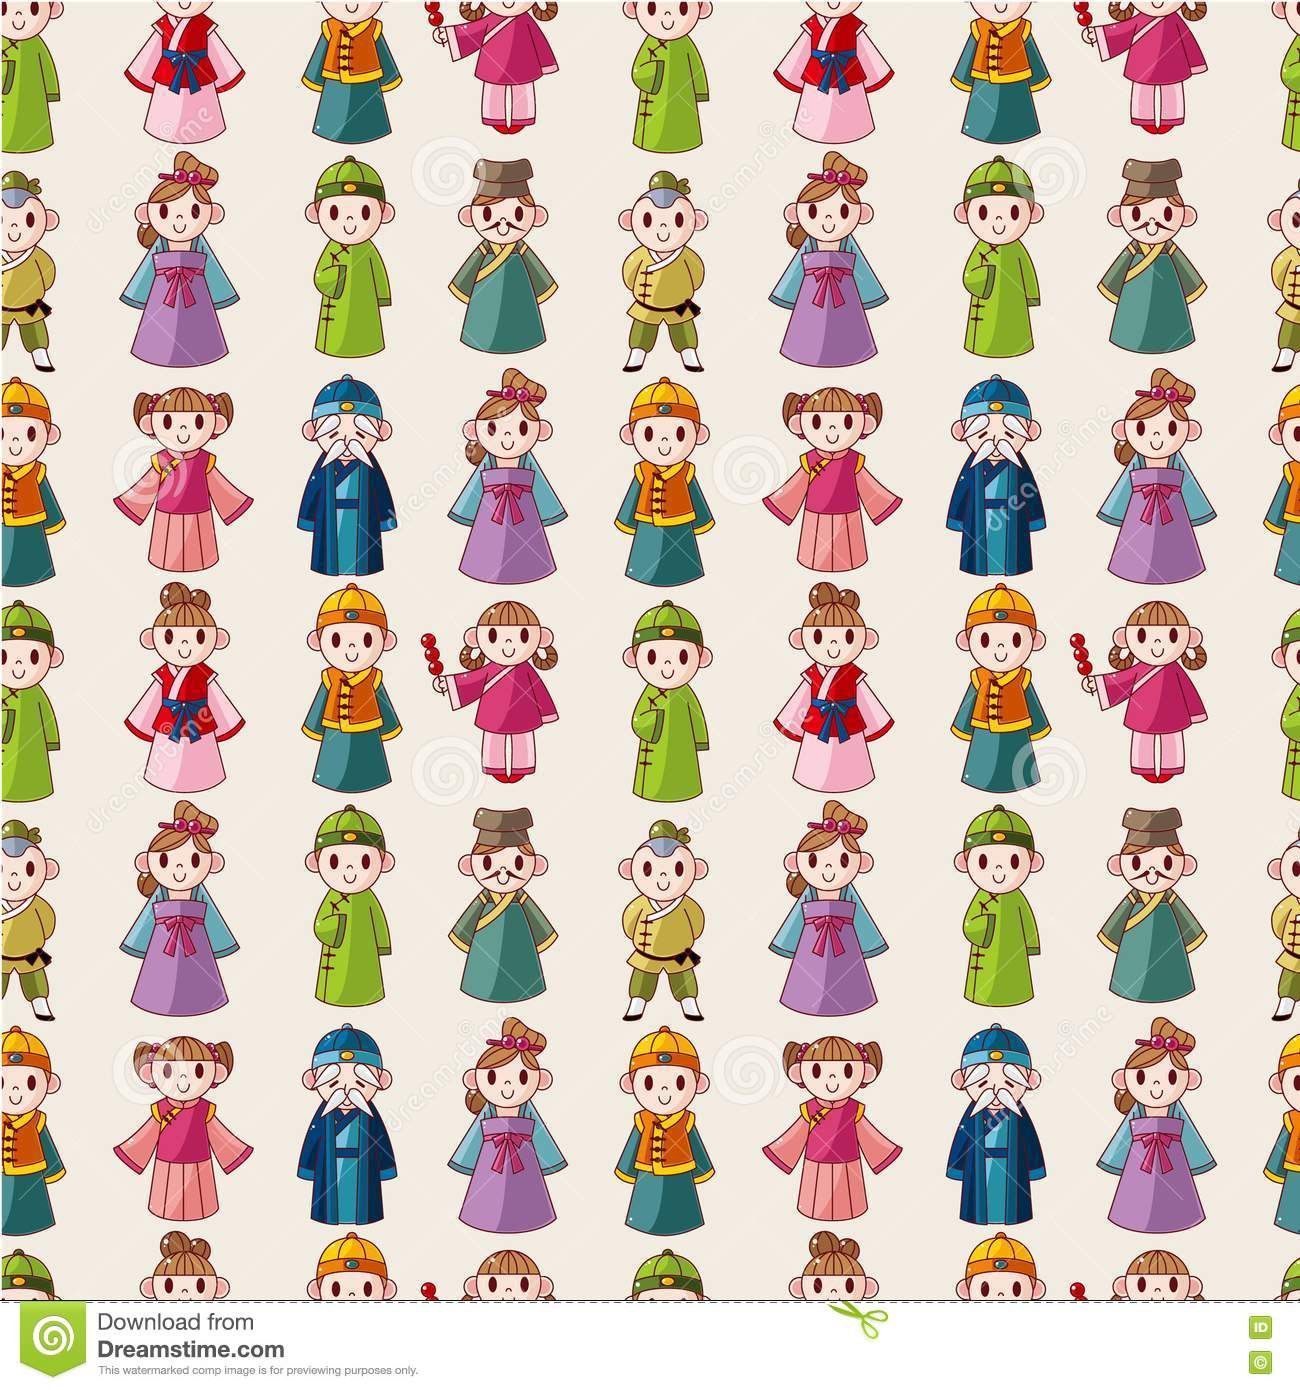 Beautiful Wedding Girl Wallpaper Cartoon Chinese People Seamlese Pattern Stock Vector